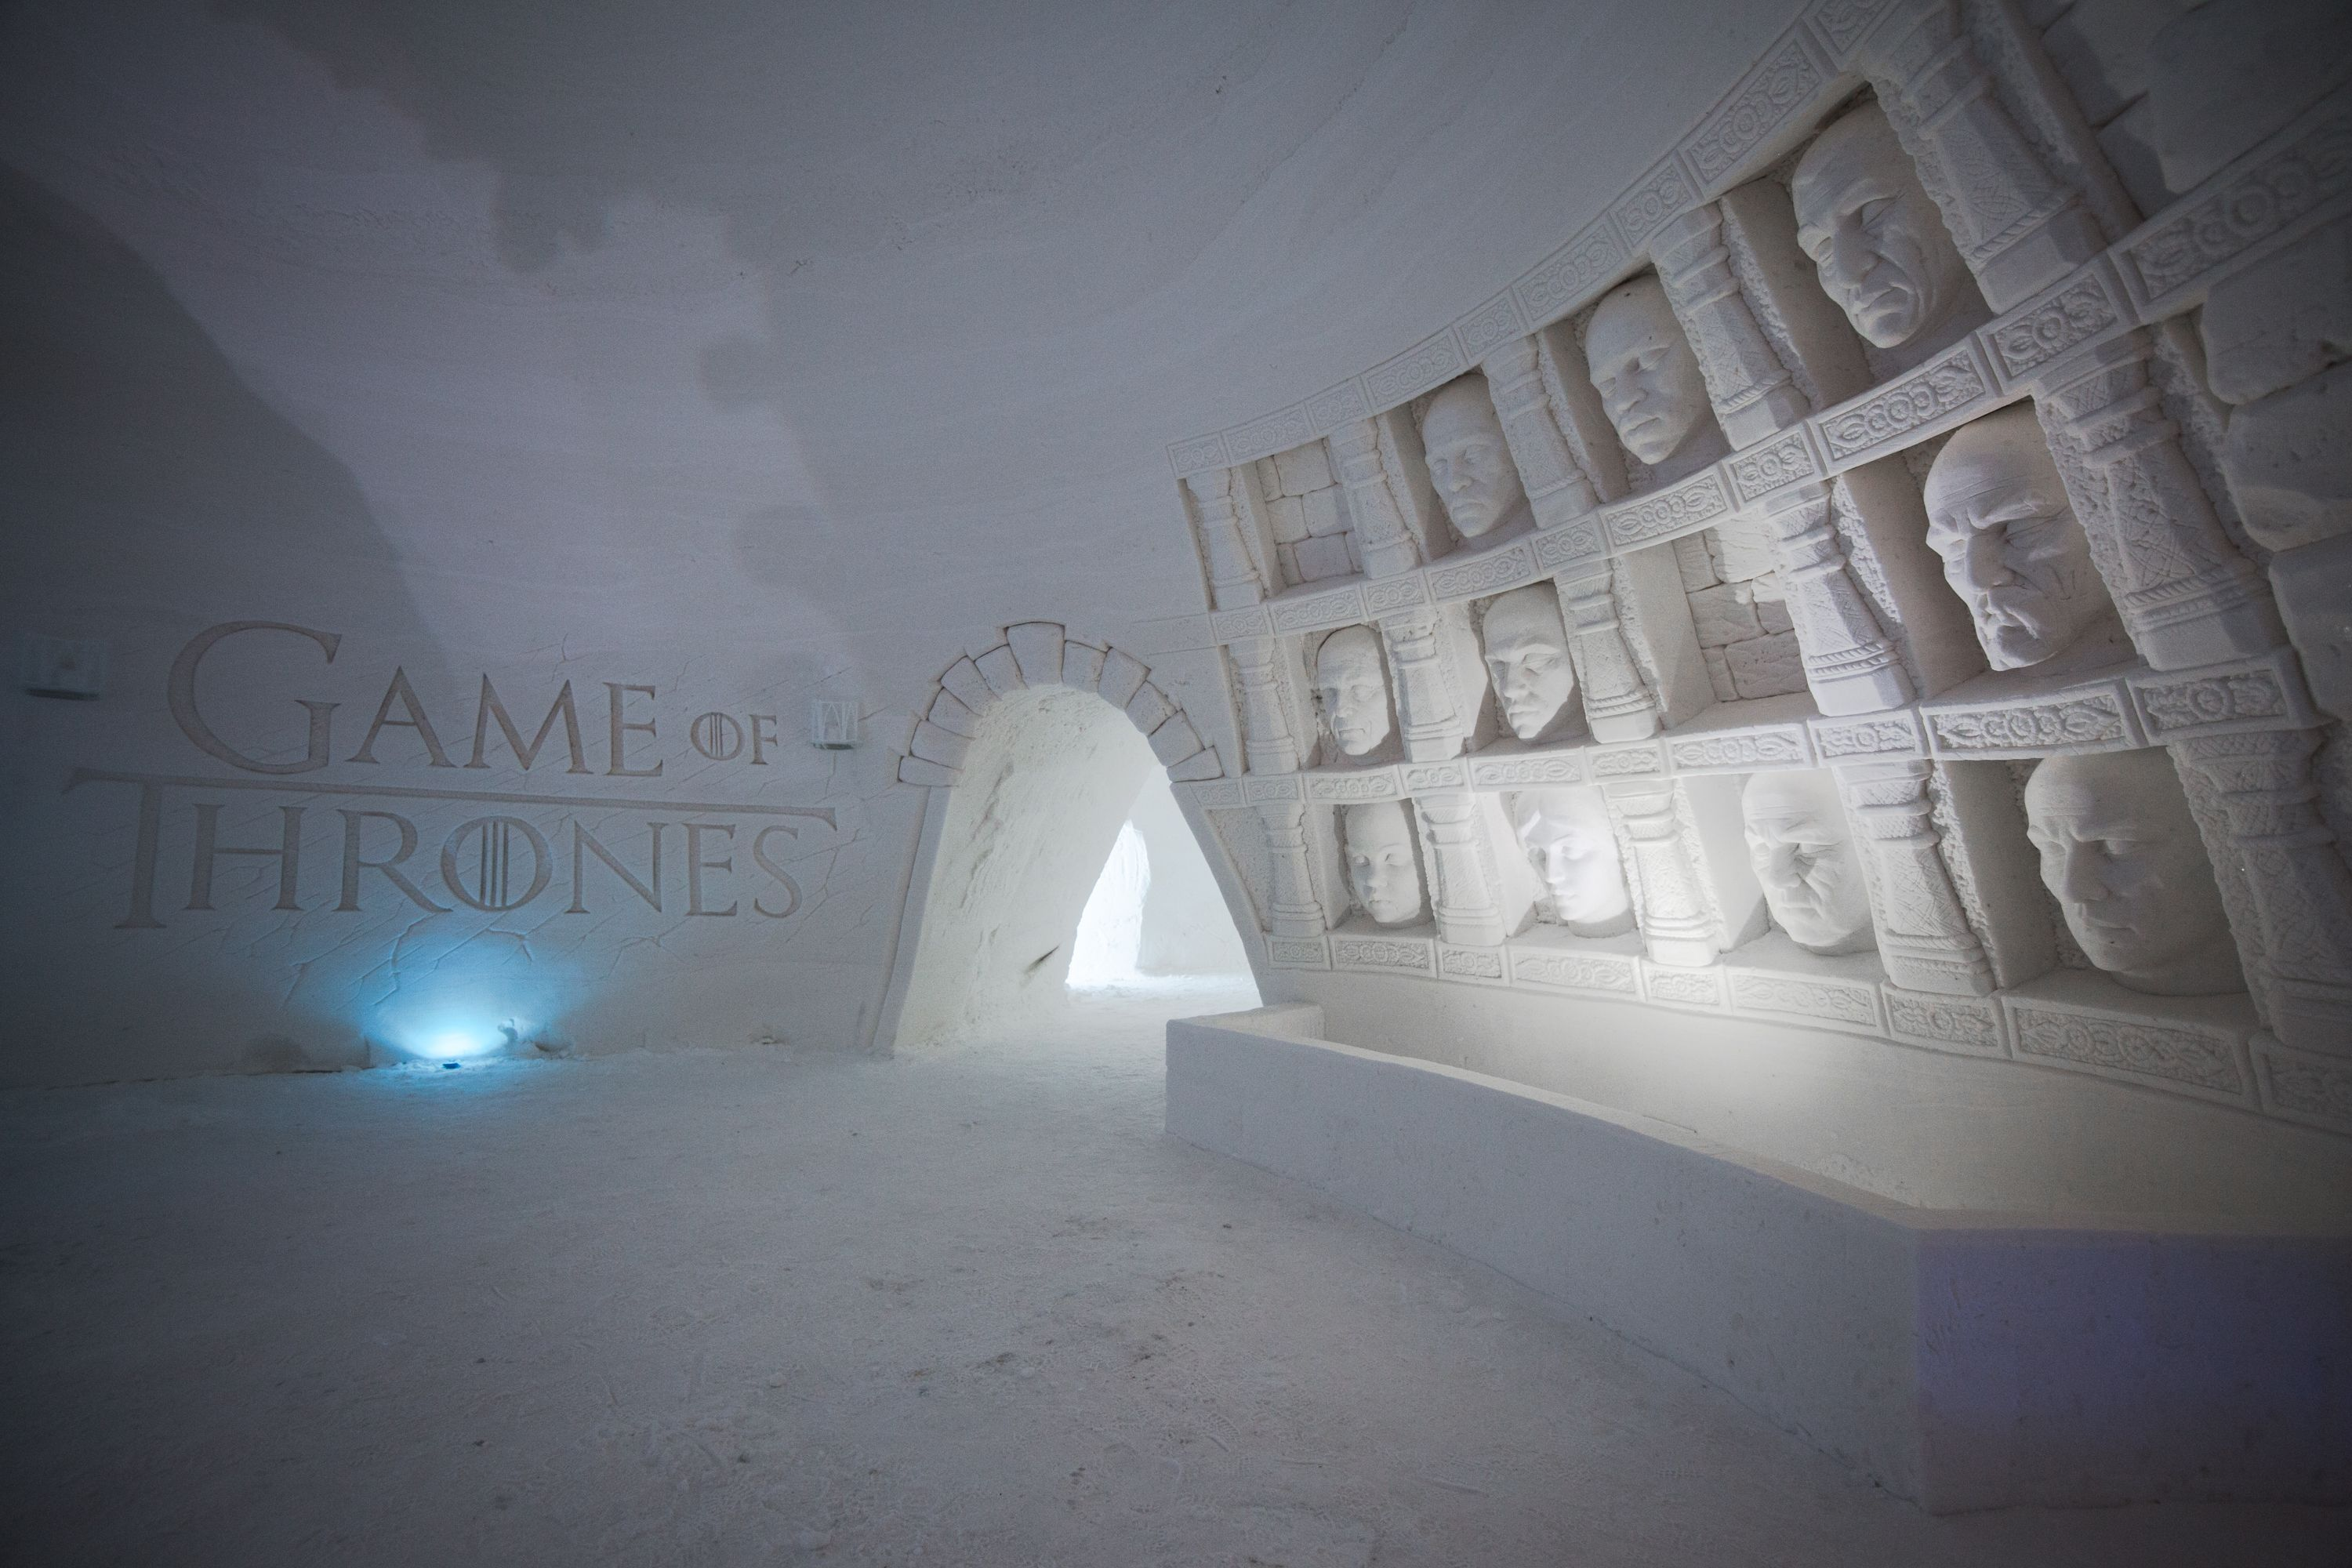 Lainio Snow Village (Eishotel) heuer im Game of Thrones Stil!